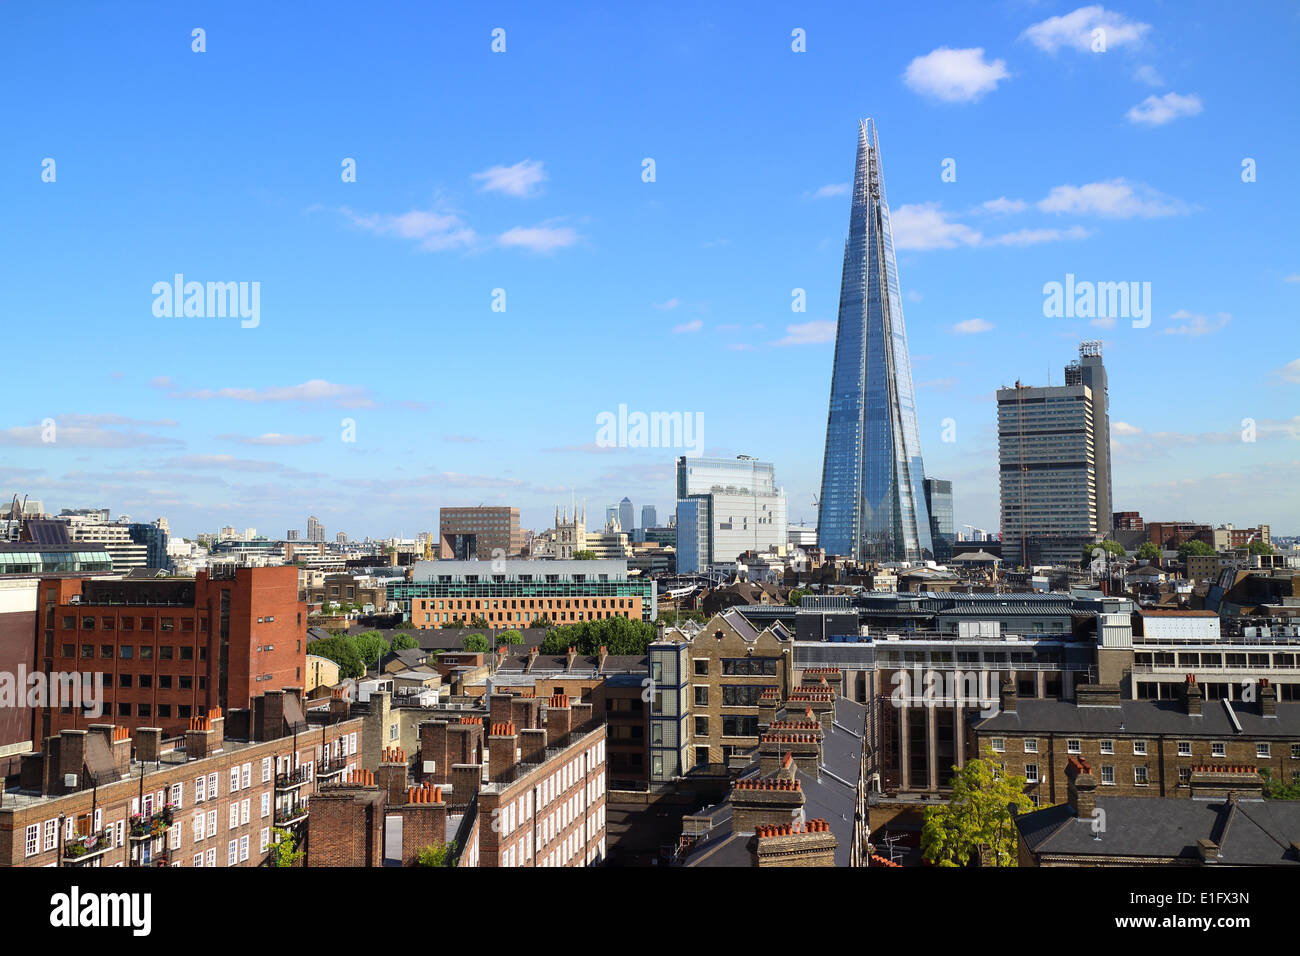 London Panoramic View with Shard in the background - Stock Image